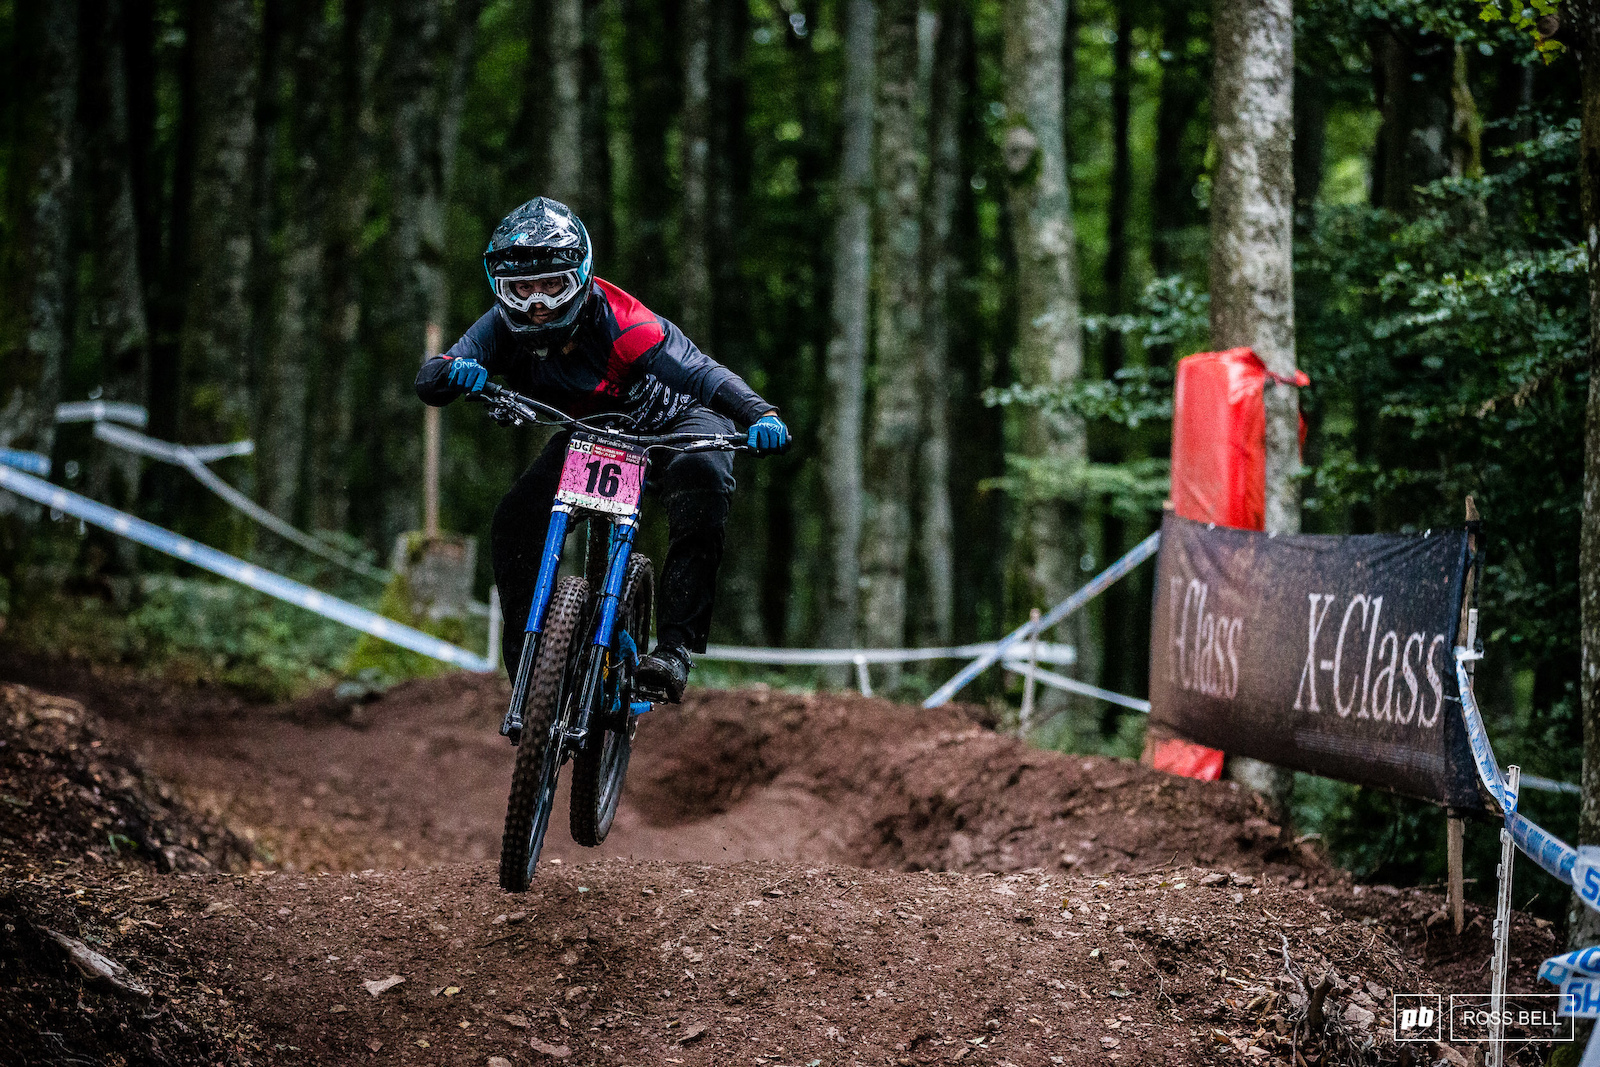 Nina Hoffman missed out on the podium by just under 2 seconds one to watch out for next year.